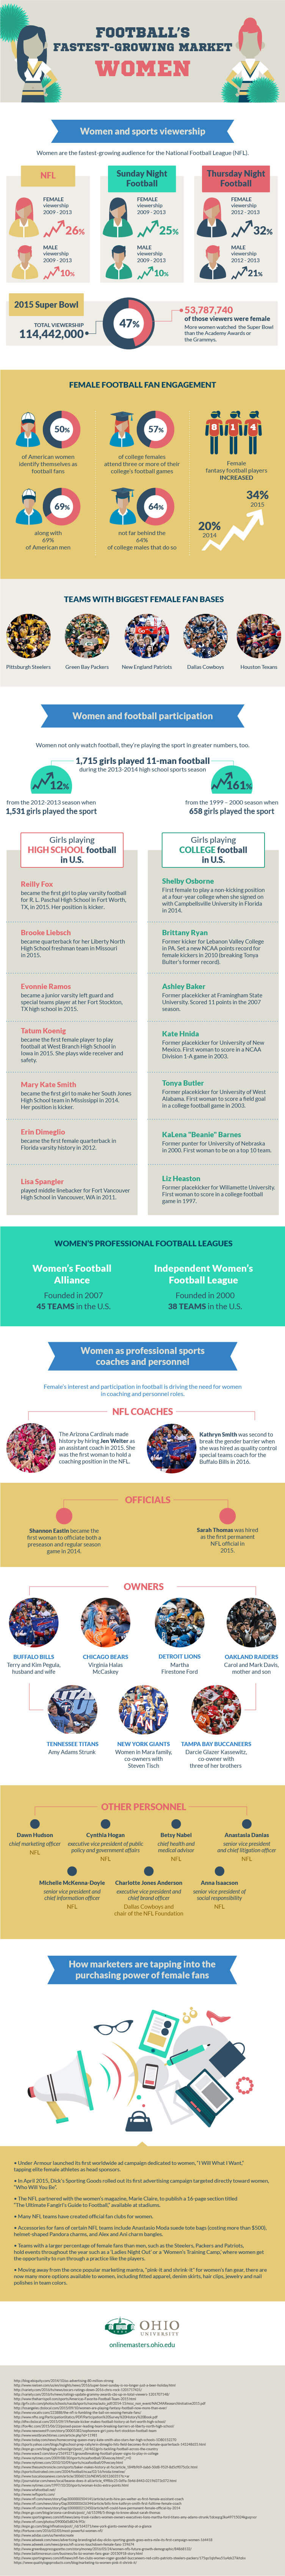 Women and Football: Popularity on the Rise infographic